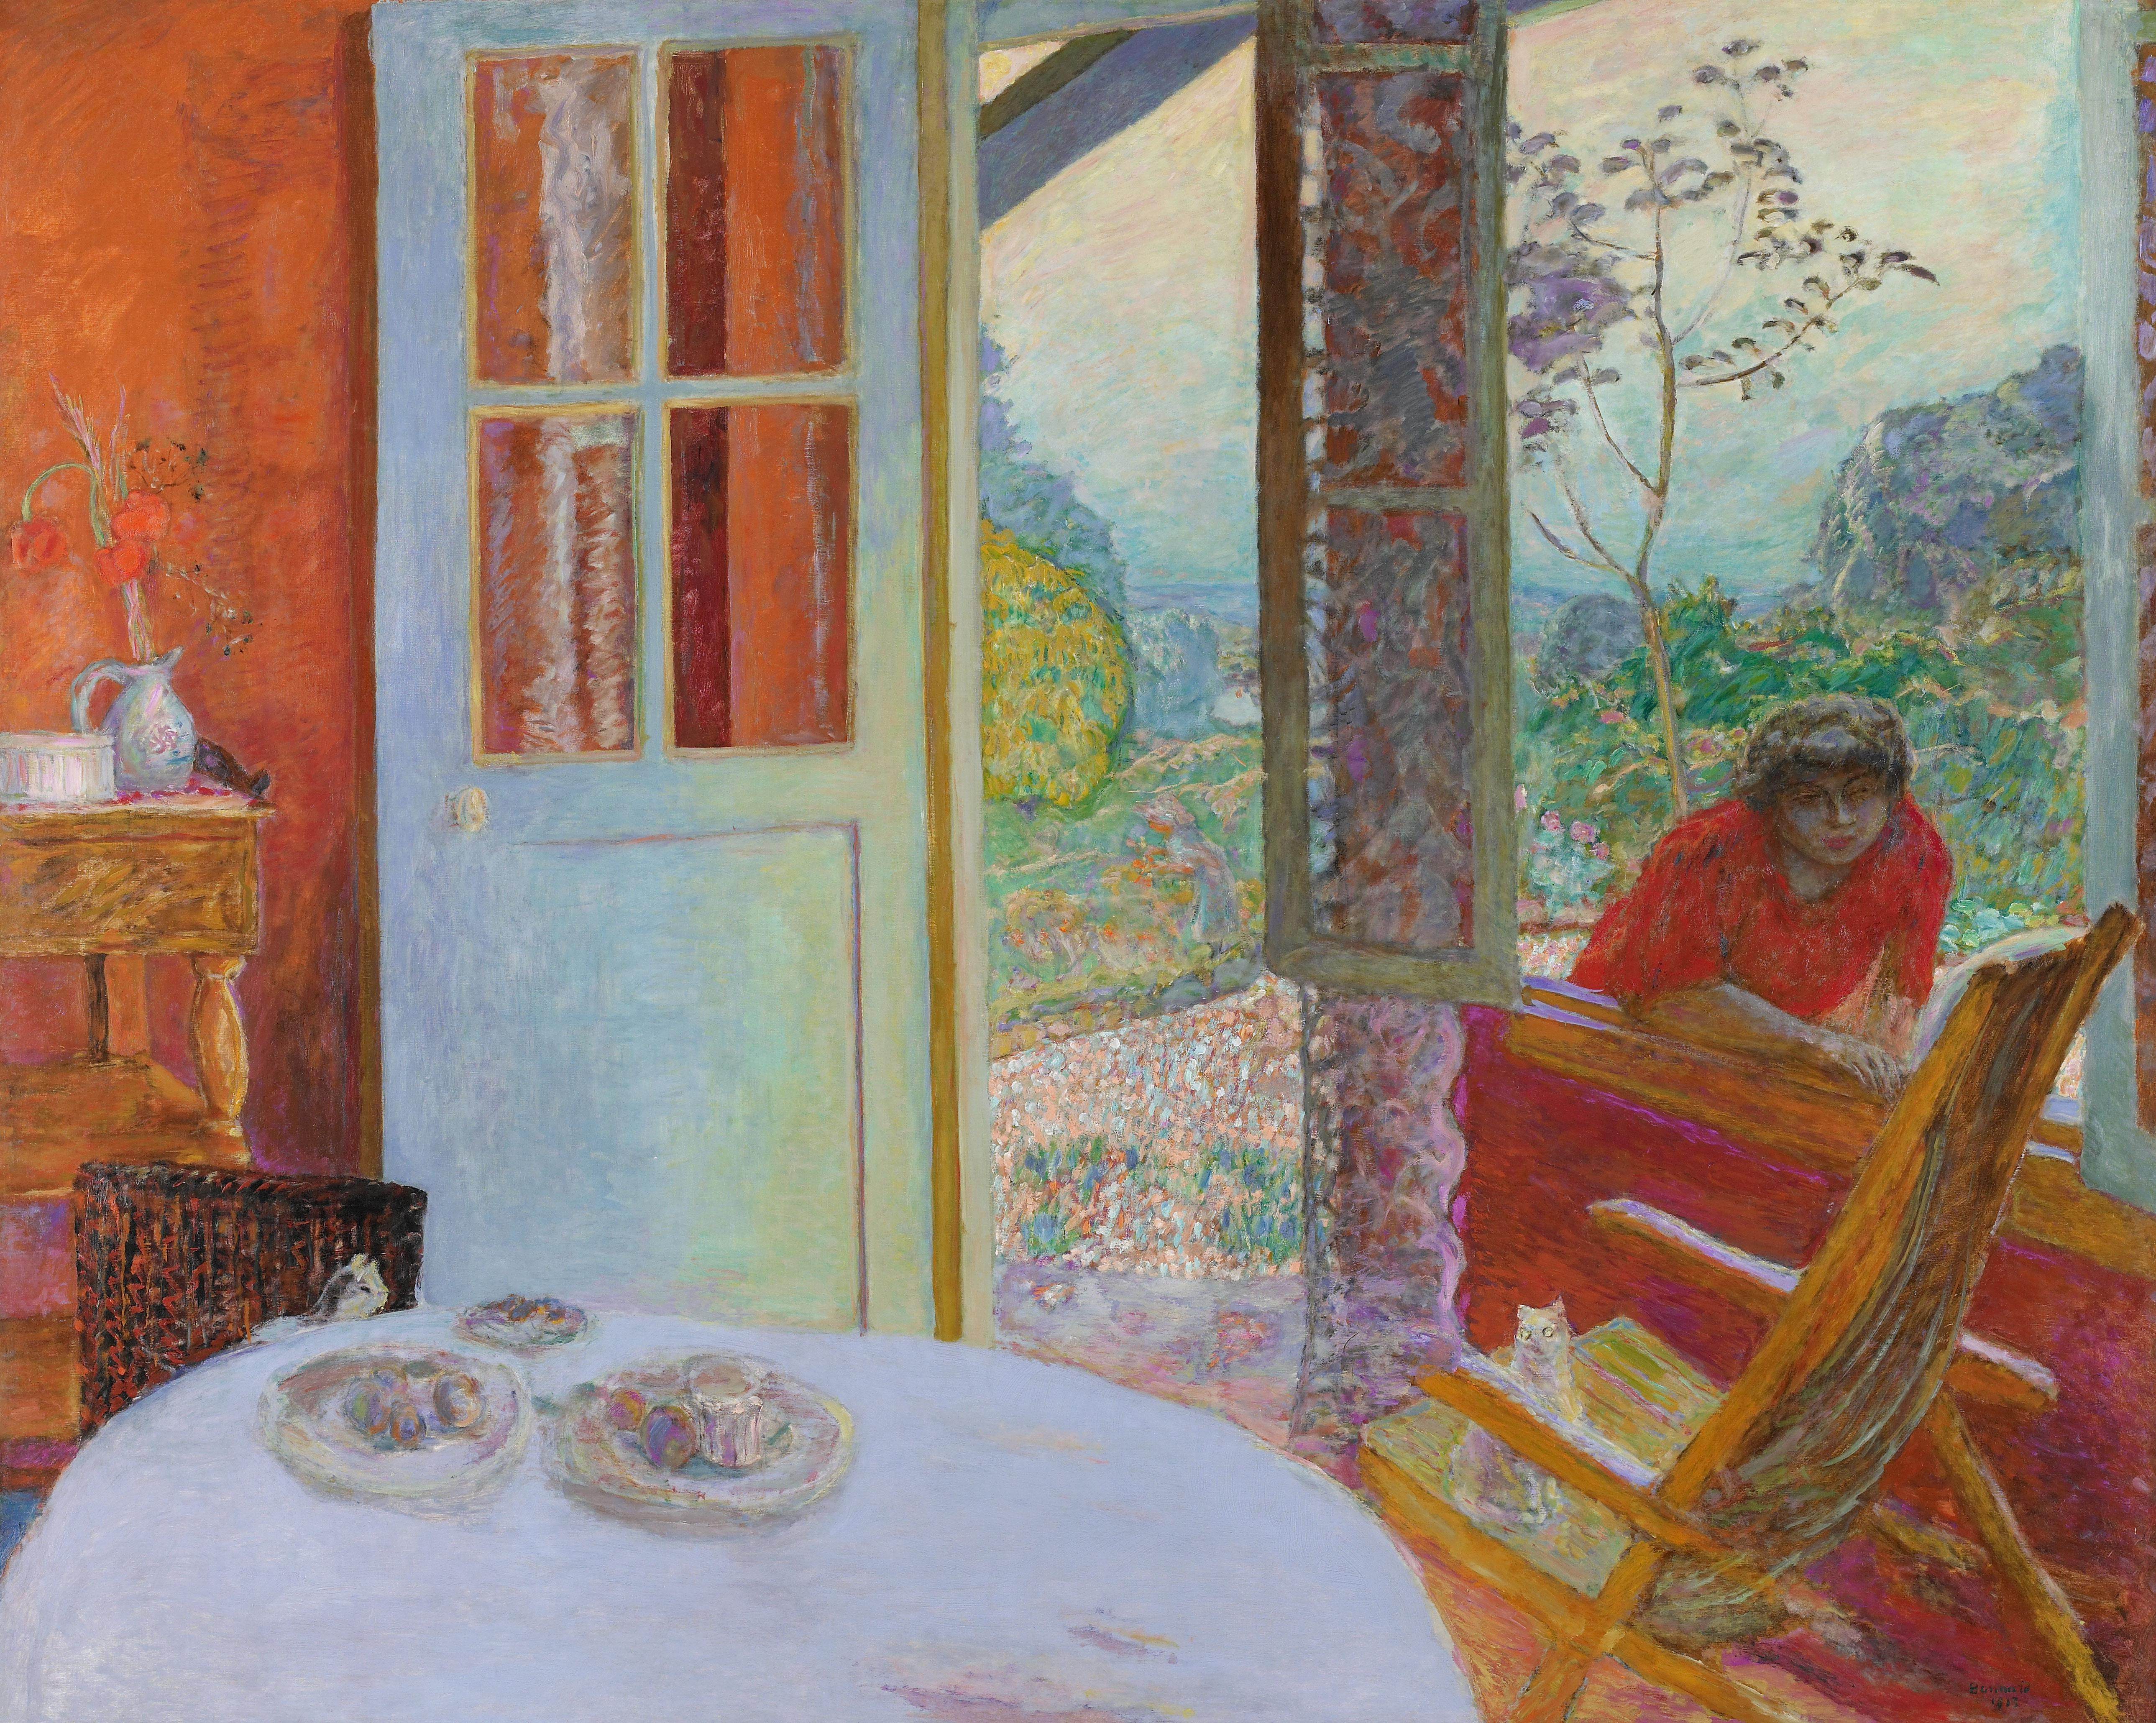 Pierre Bonnard: The Colour of Memory review – scenes from a marriage